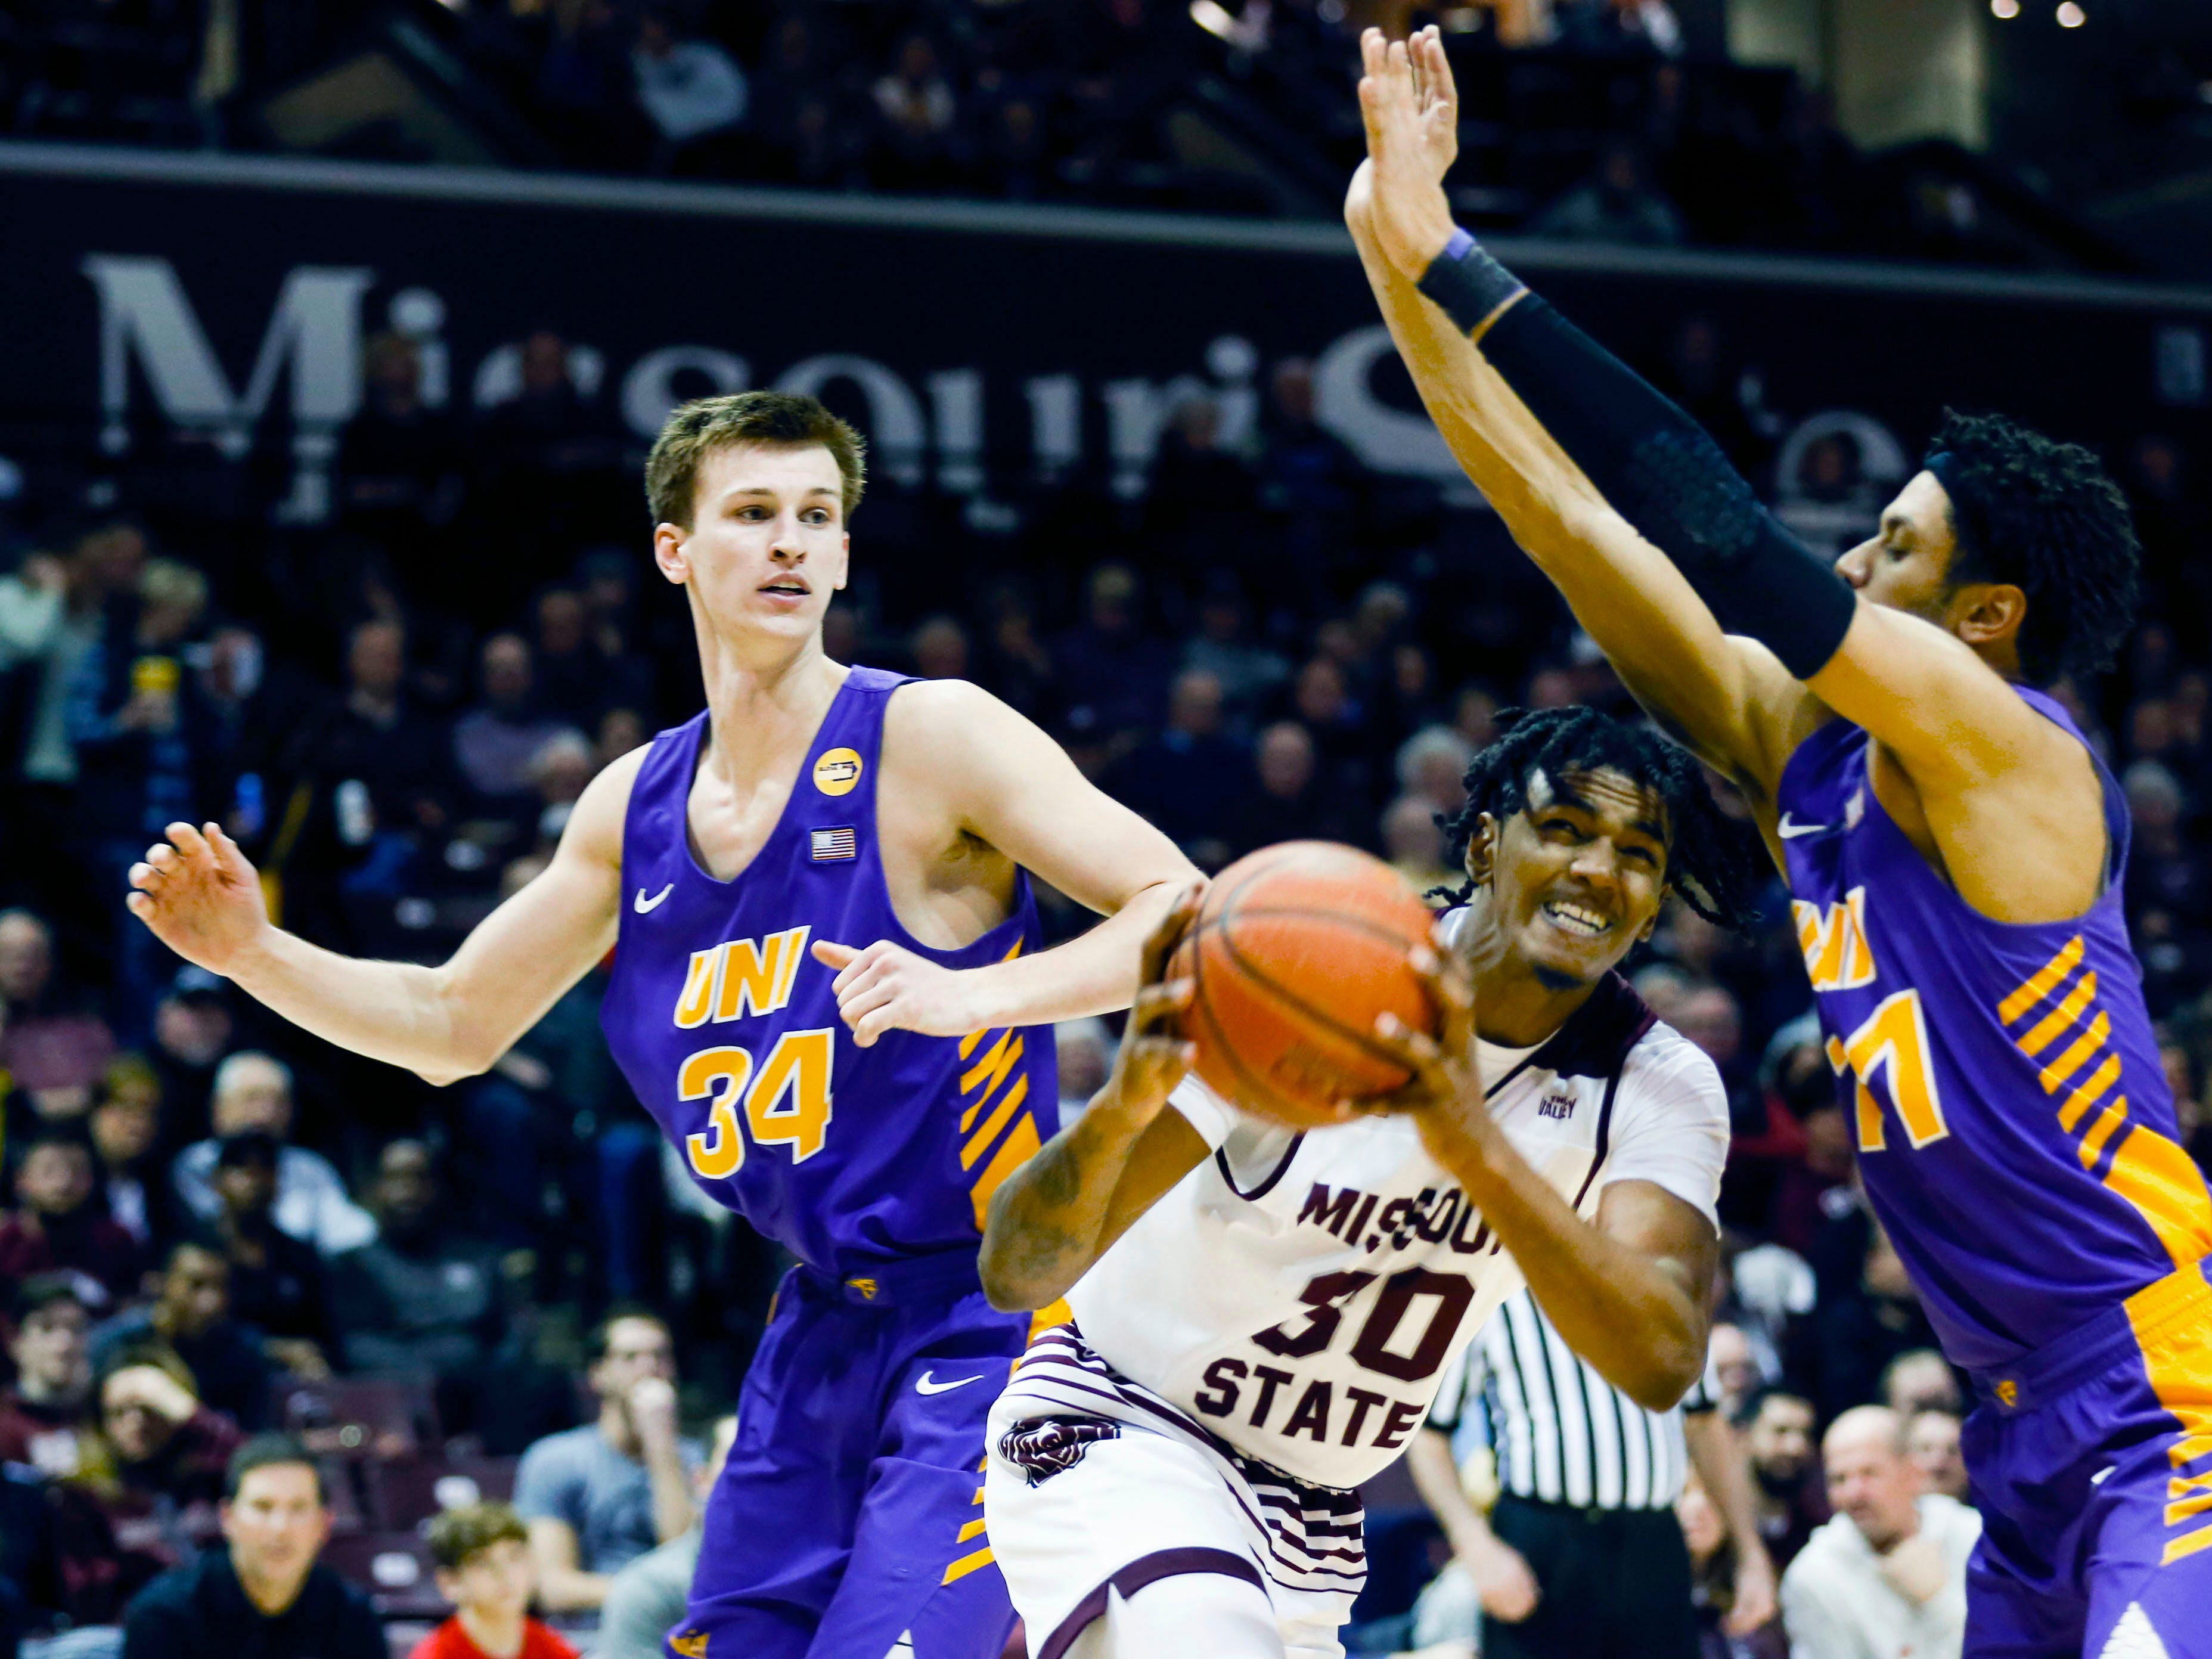 Missouri State's Tulio Da Silva drives around UNI's Trae Berhow (right) and Luke McDonnell on his way to the basket as the Bears take on the Panthers at JQH Arena on Wednesday, Feb. 20, 2019.